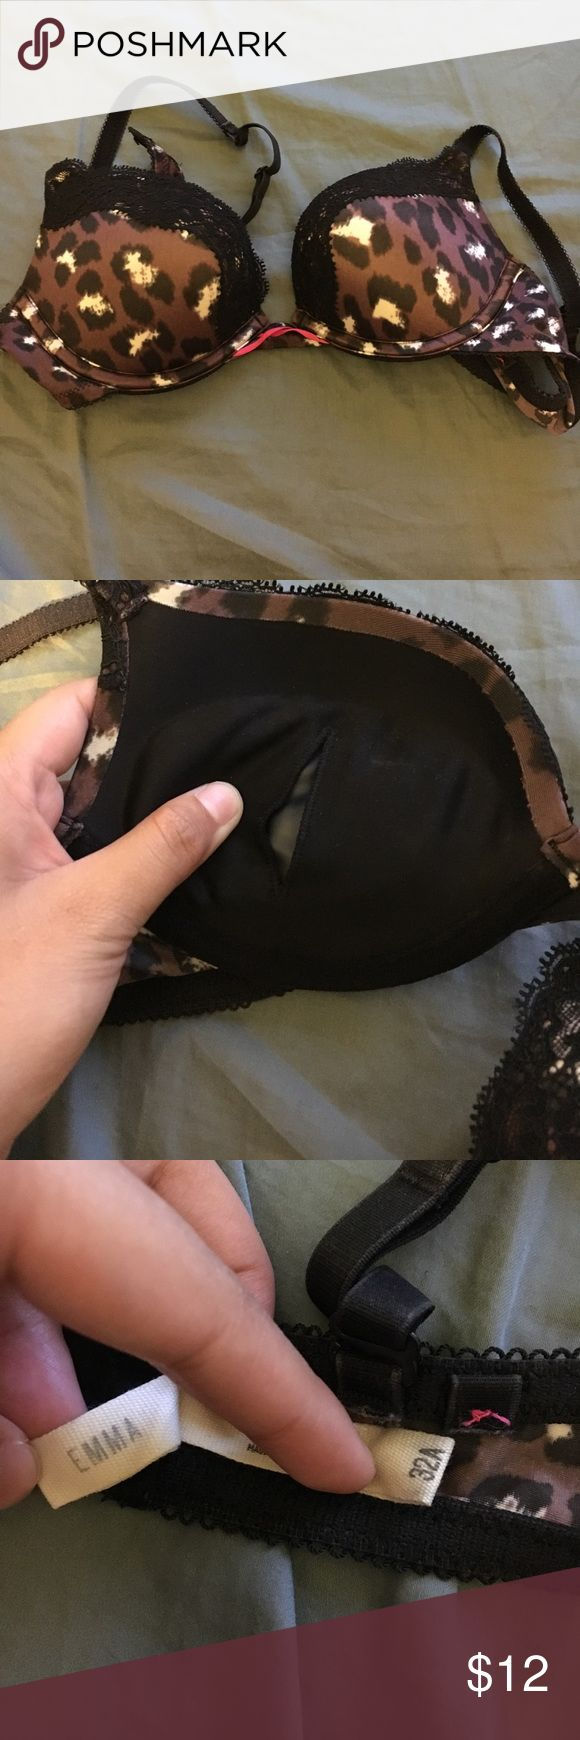 Aerie emma super push up brown leopard print bra Aerie emma style super push up (air inserts) brown leopard print bra in size 32A. Lightly worn less than 3 times - underwire and cups still intact, straps in amazing condition. A bit of wear shown in pic 4. Otherwise hooks and everything in perfect condition. aerie Intimates & Sleepwear Bras